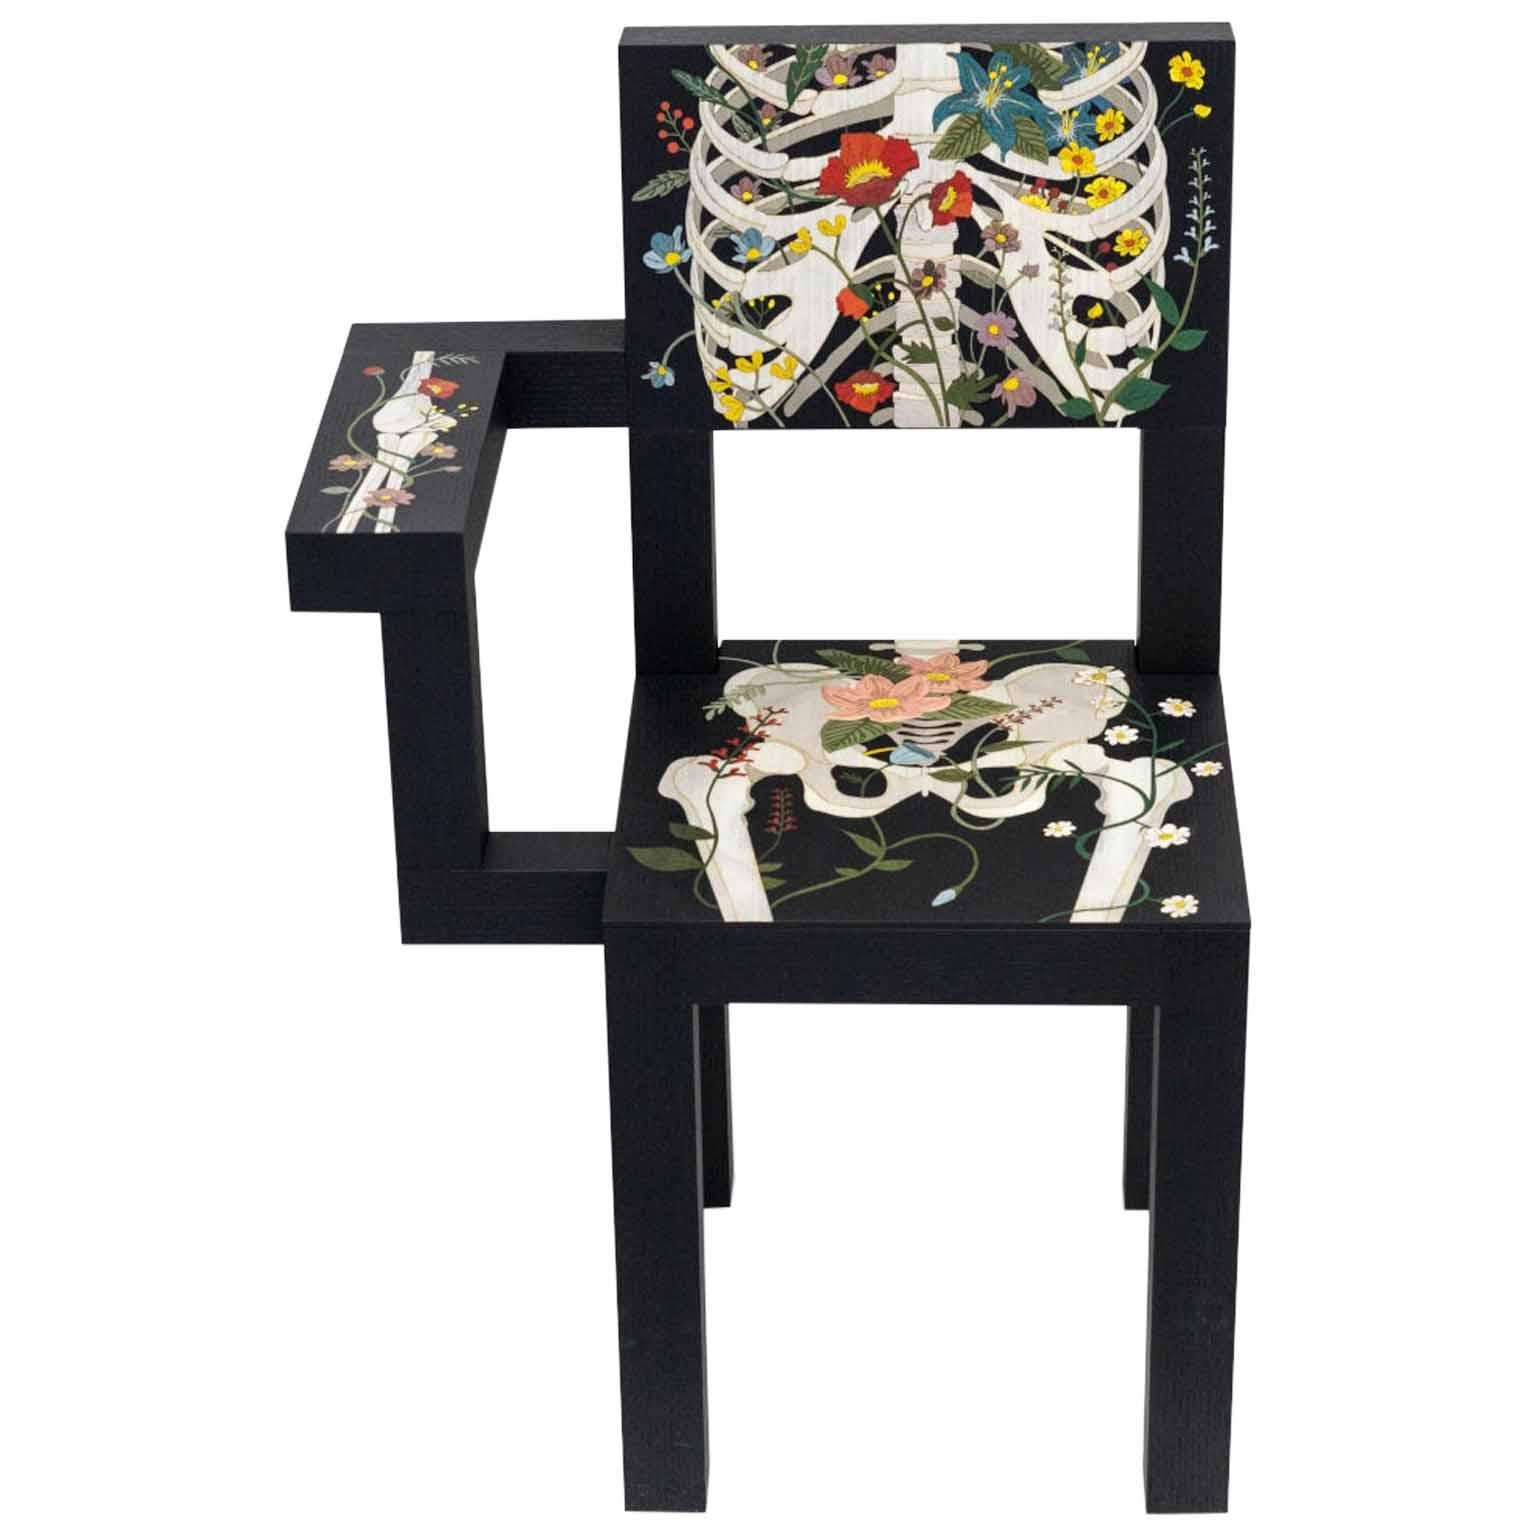 21st Century Marcantonio Chair Limited Edition Wood Inlay Black Flower